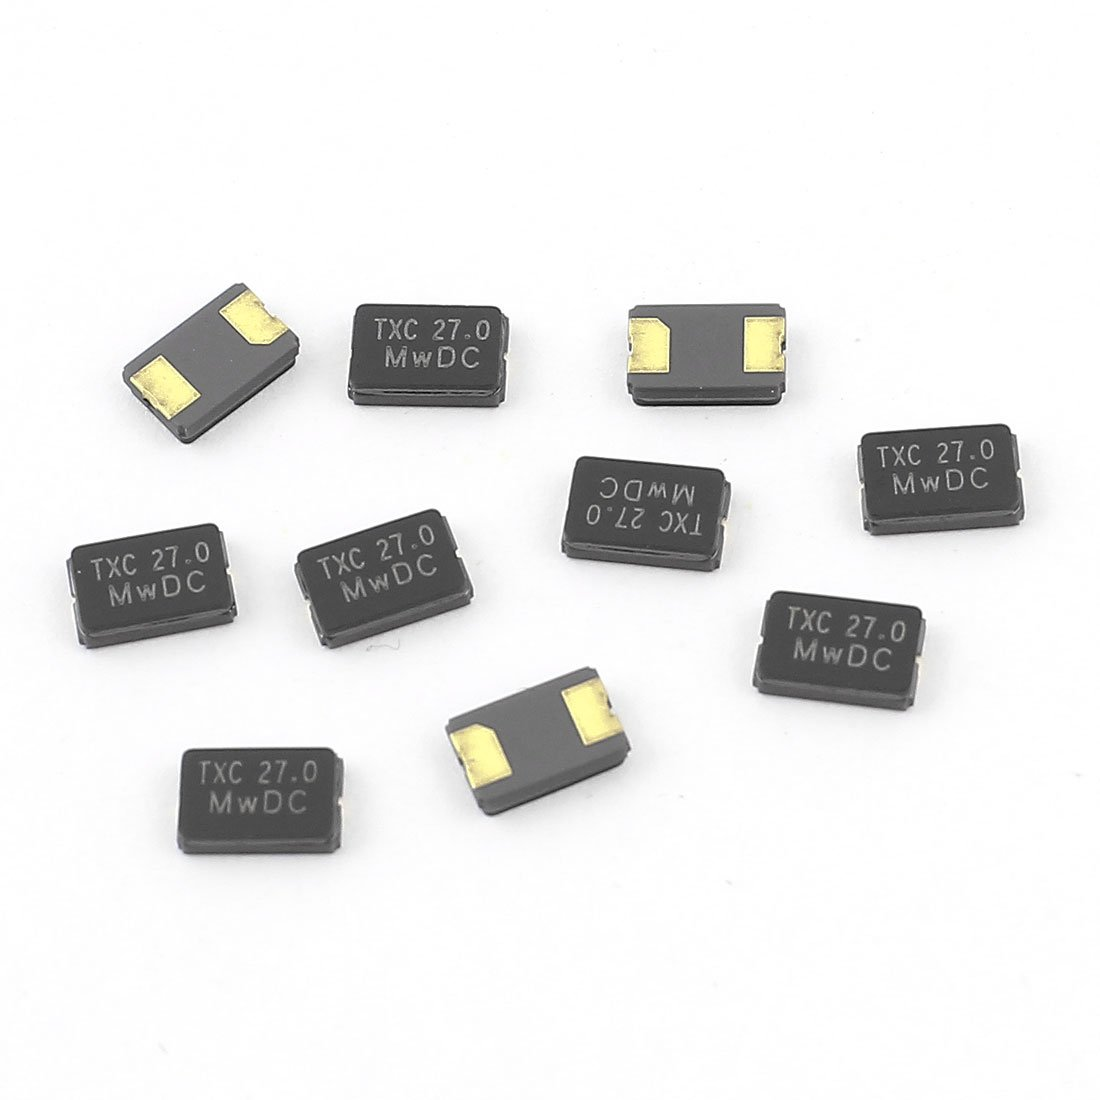 Aexit 10 Pcs Passive Components 27MHz 27.000Hz SMD 2Pin Passive Crystal Crystals Oscillator 5032